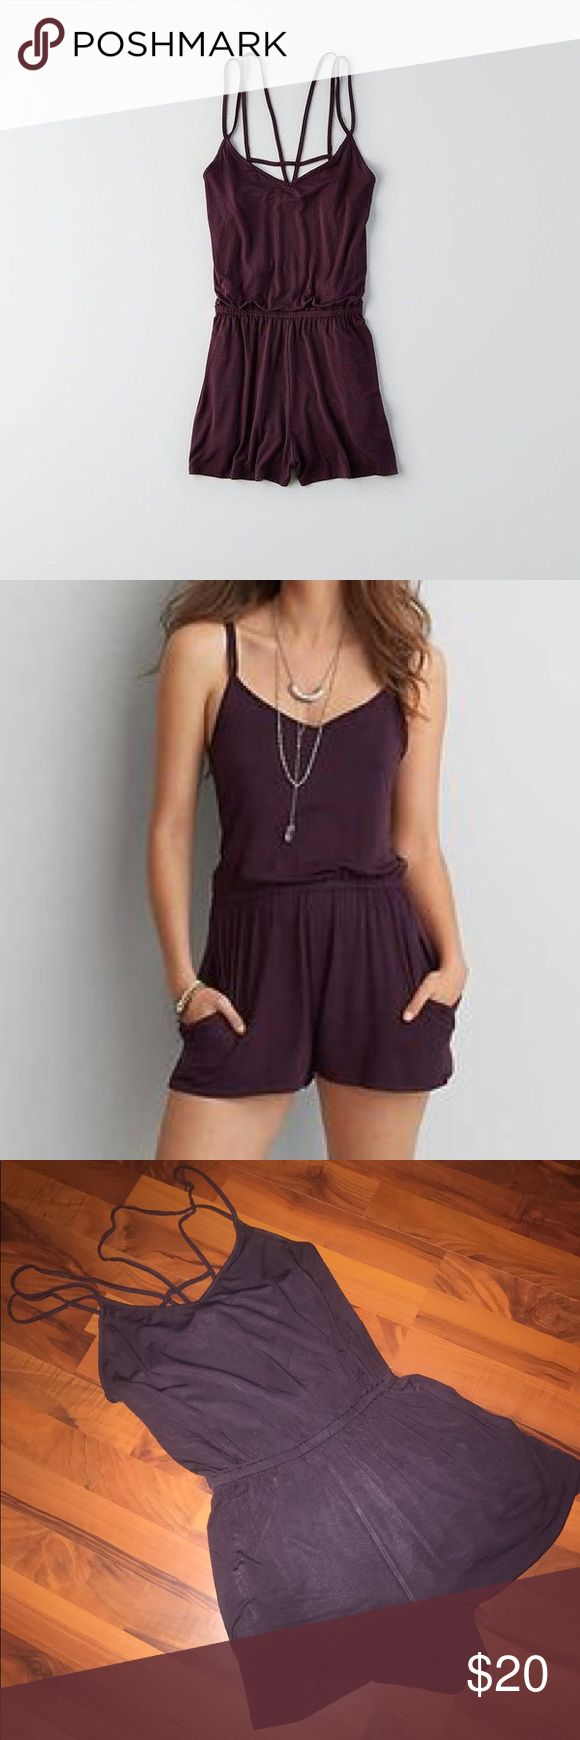 AE Soft and Sexy Cage Back Romper Raisin Wine This AEO Soft and Sexy romper is the perfect combination of comfort and style! It has a defined waist and has a flared bottom. My favorite part about this piece is the caged back, which is perfect to pair with a bralette! It has only been worn a couple times, but is still good as new🌟 American Eagle Outfitters Other